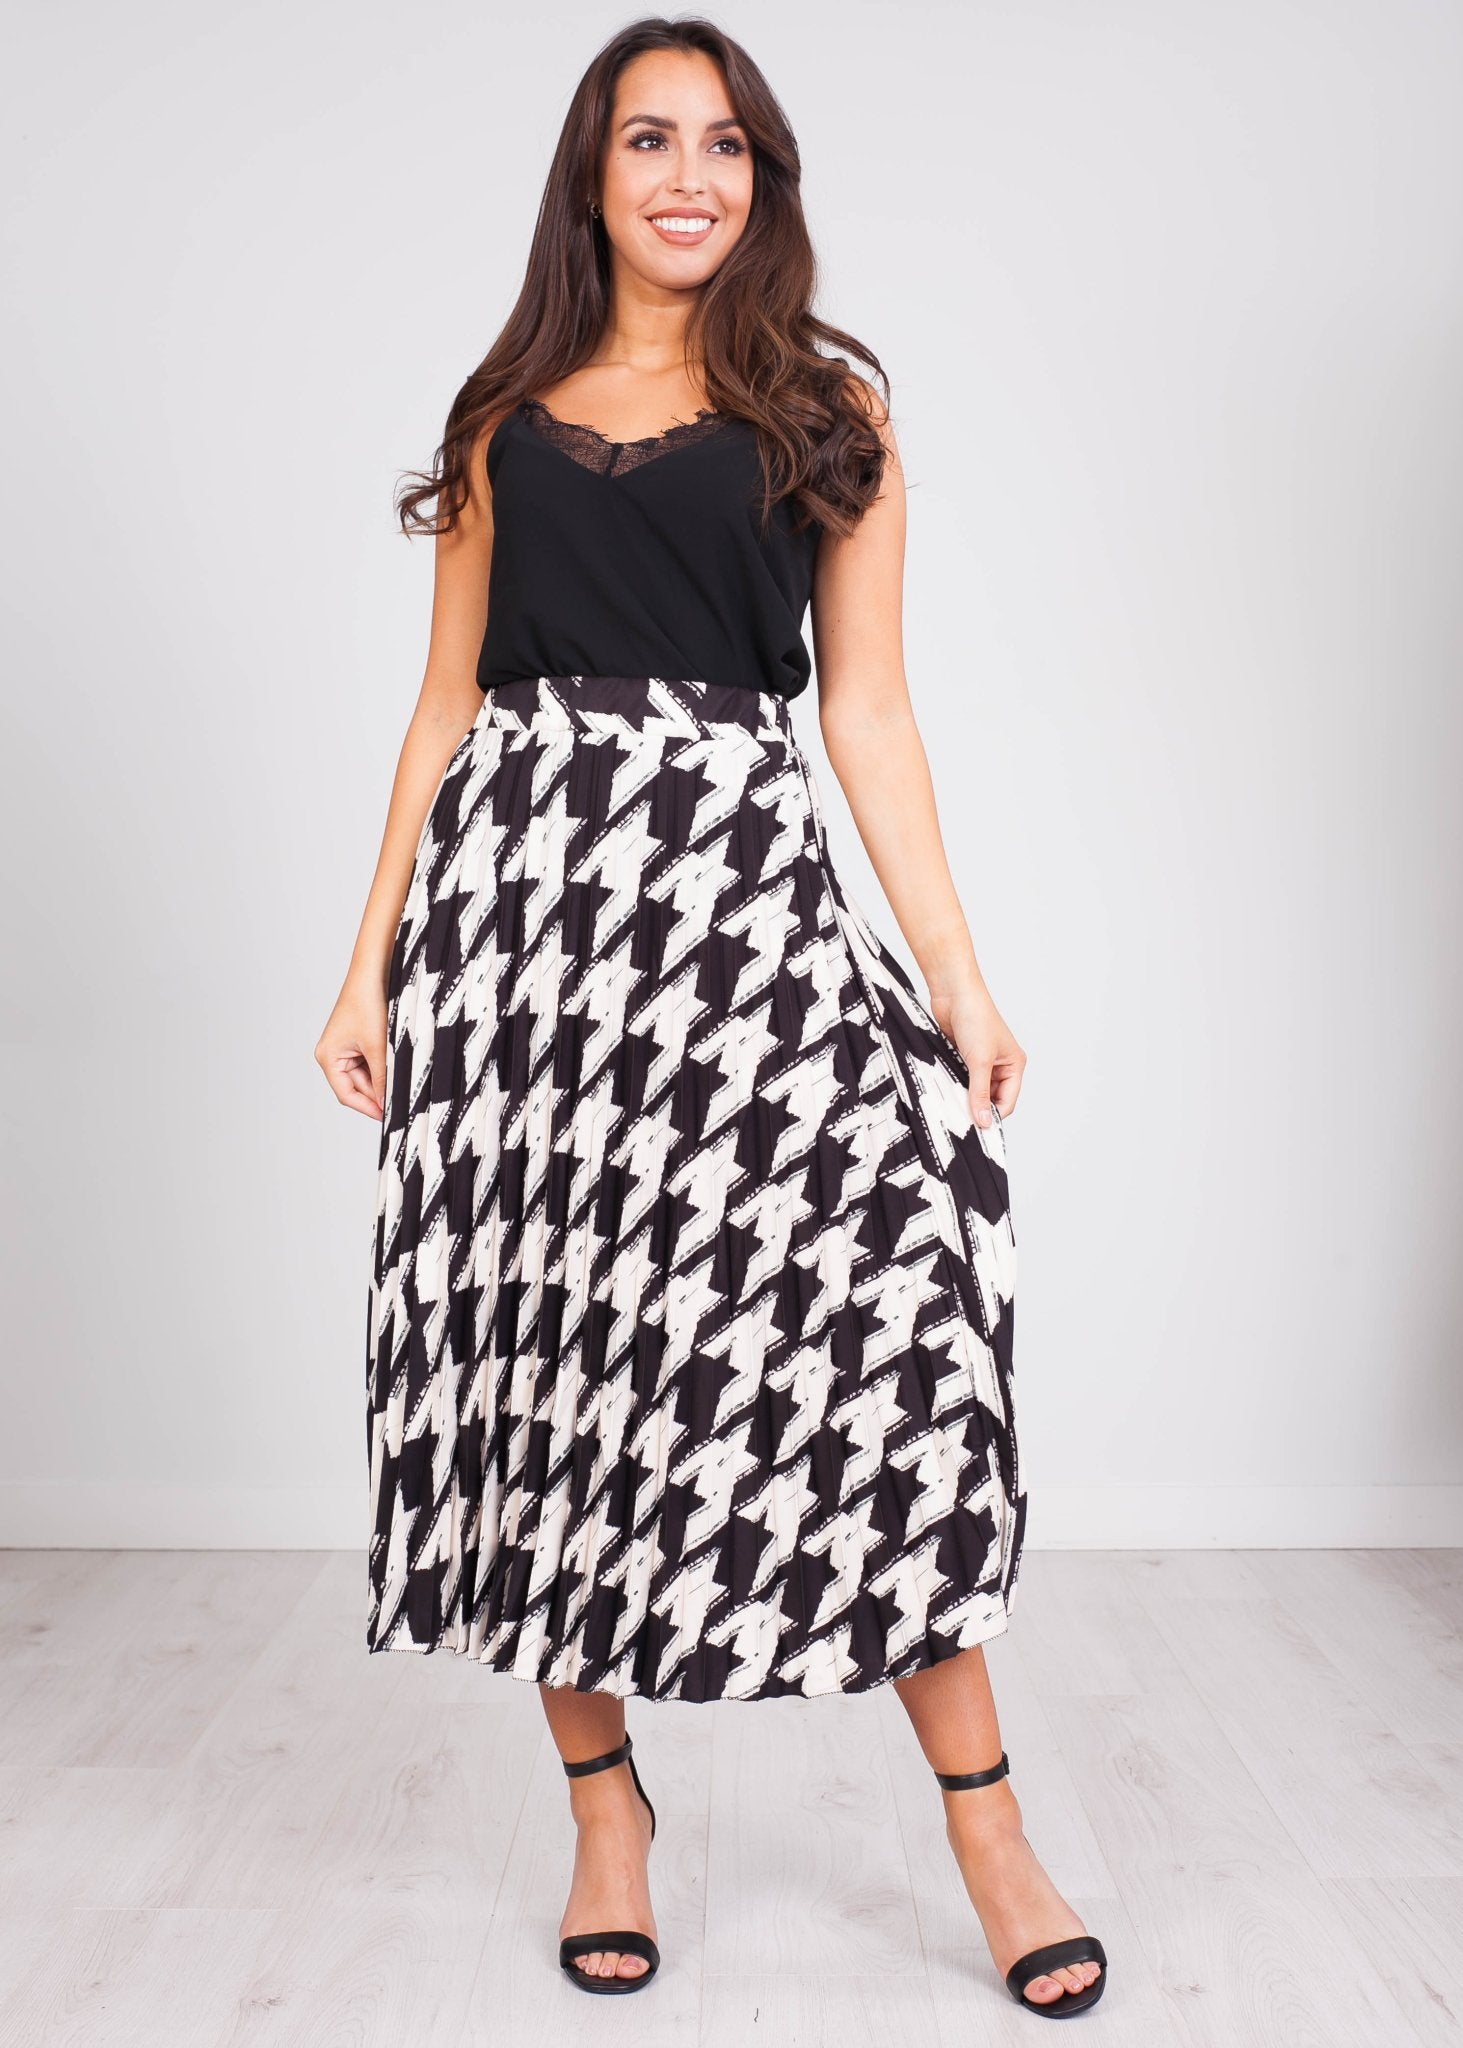 Gia Houndstooth Midi Skirt - The Walk in Wardrobe